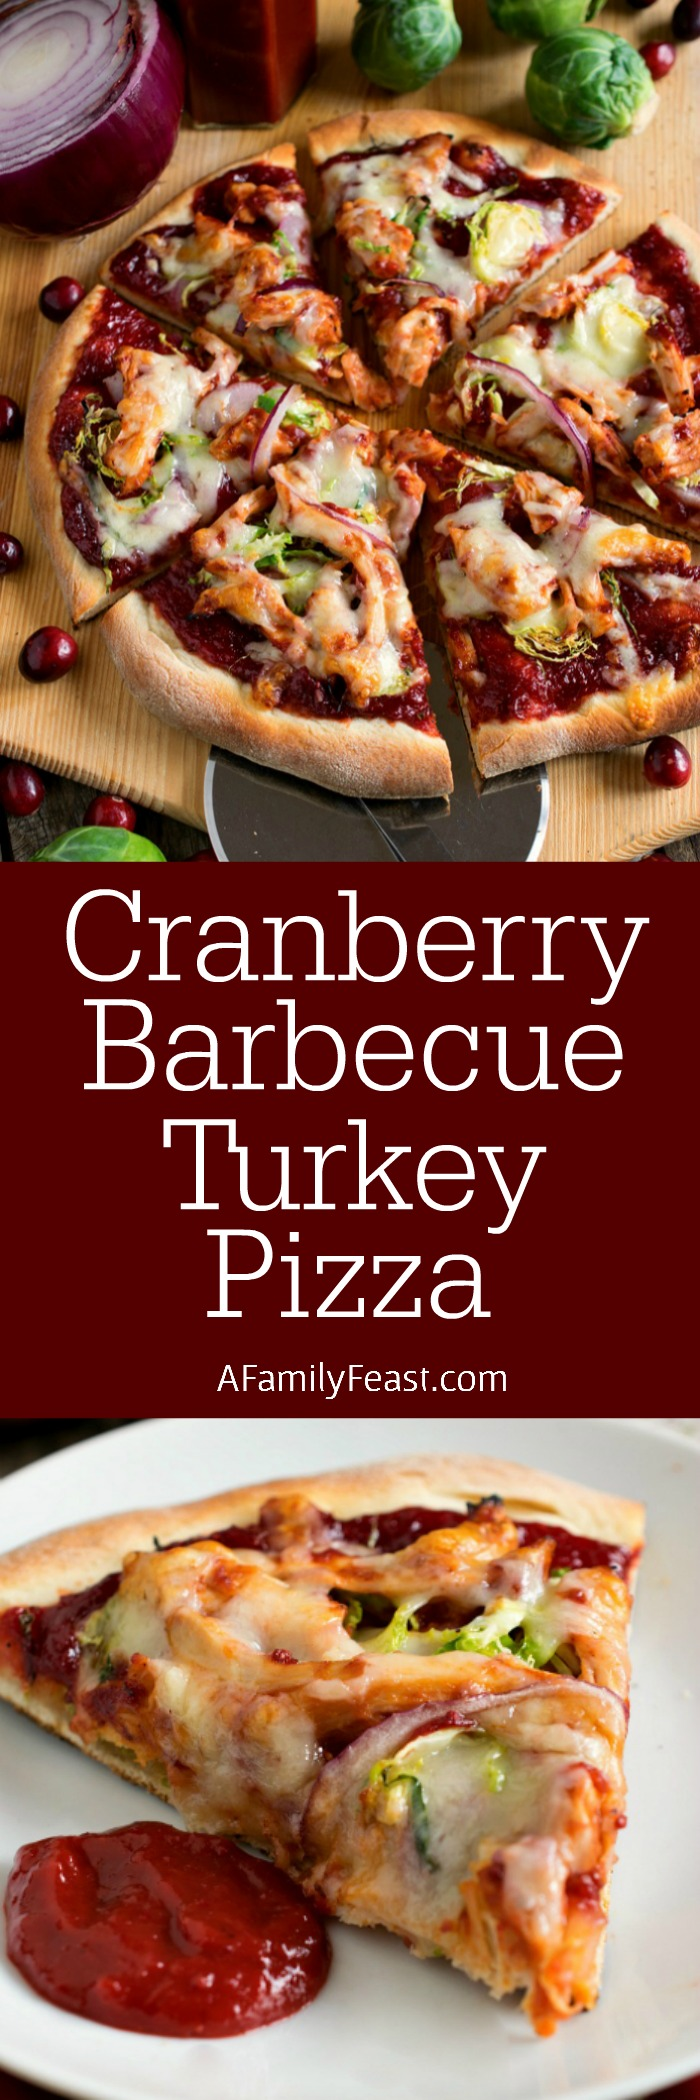 Cranberry Barbecue Turkey Pizza - A delicious different way to cook ...